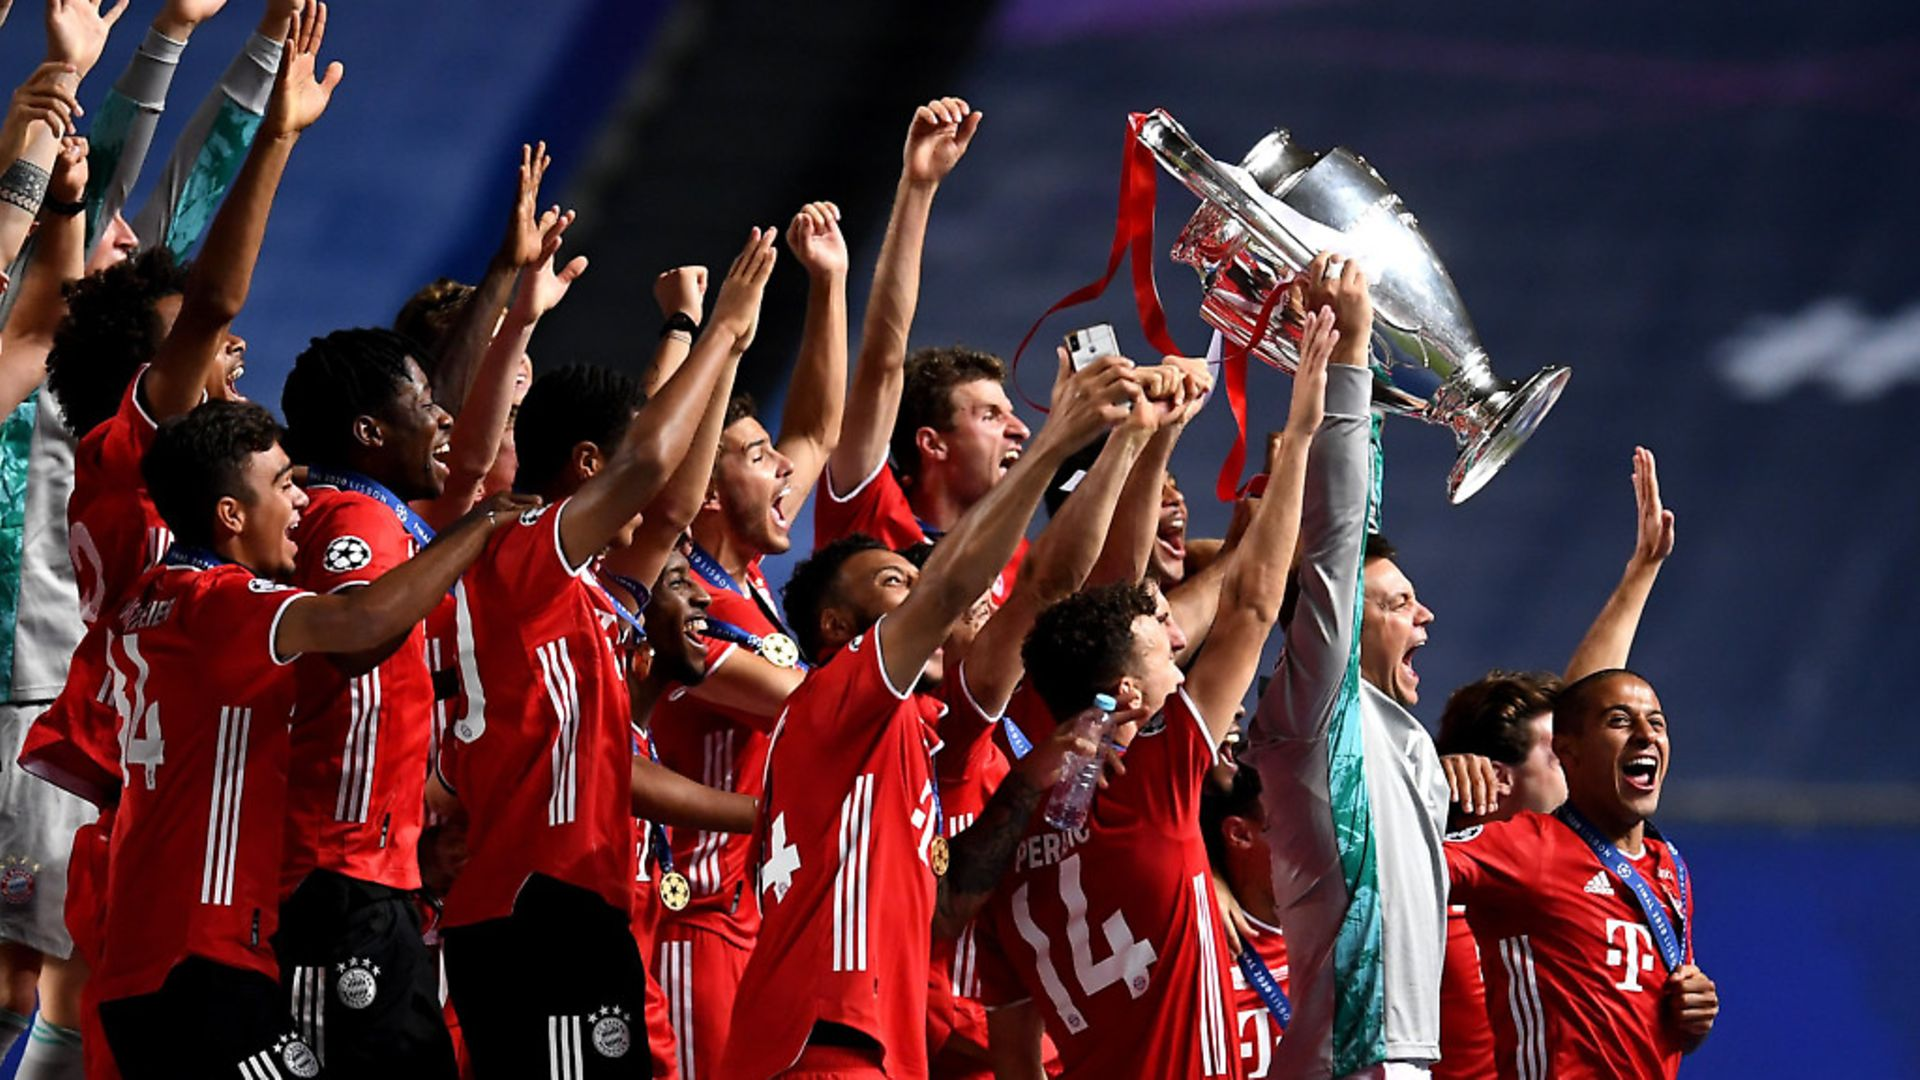 Manuel Neuer, captain of FC Bayern Munich lifts the UEFA Champions League Trophy following his team's victory in the UEFA Champions League Final match between Paris Saint-Germain and Bayern Munich at Estadio do Sport Lisboa e Benfica on August 23, 2020 in Lisbon, Portugal. (Photo by David Ramos/Getty Images) - Credit: Getty Images